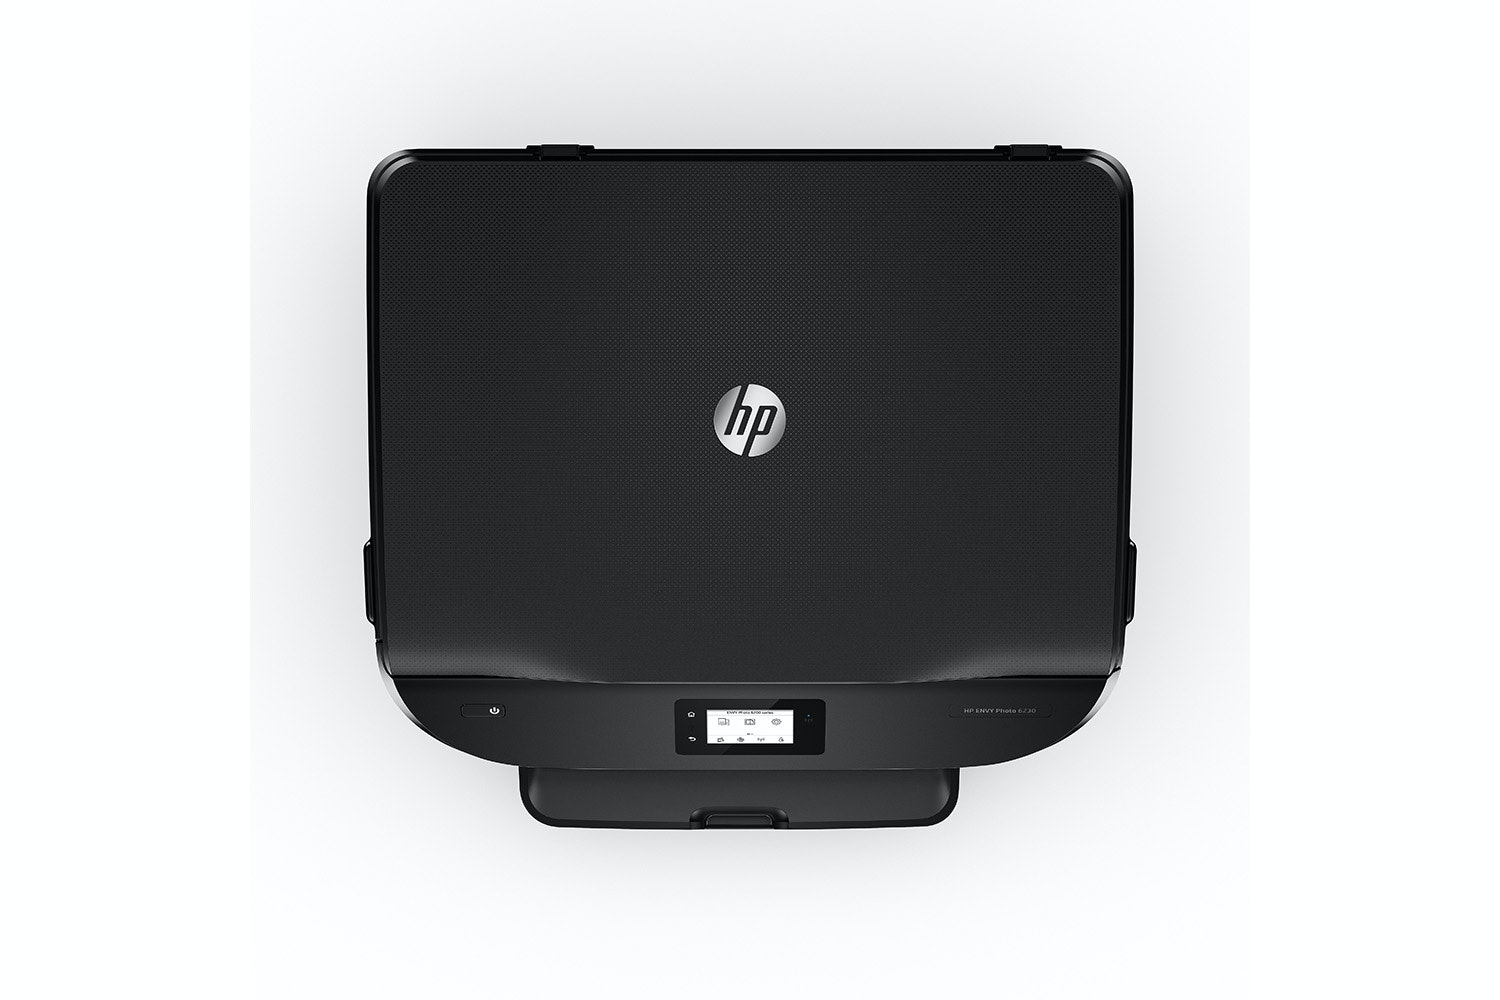 HP ENVY Photo 6230 All-in-One Printer